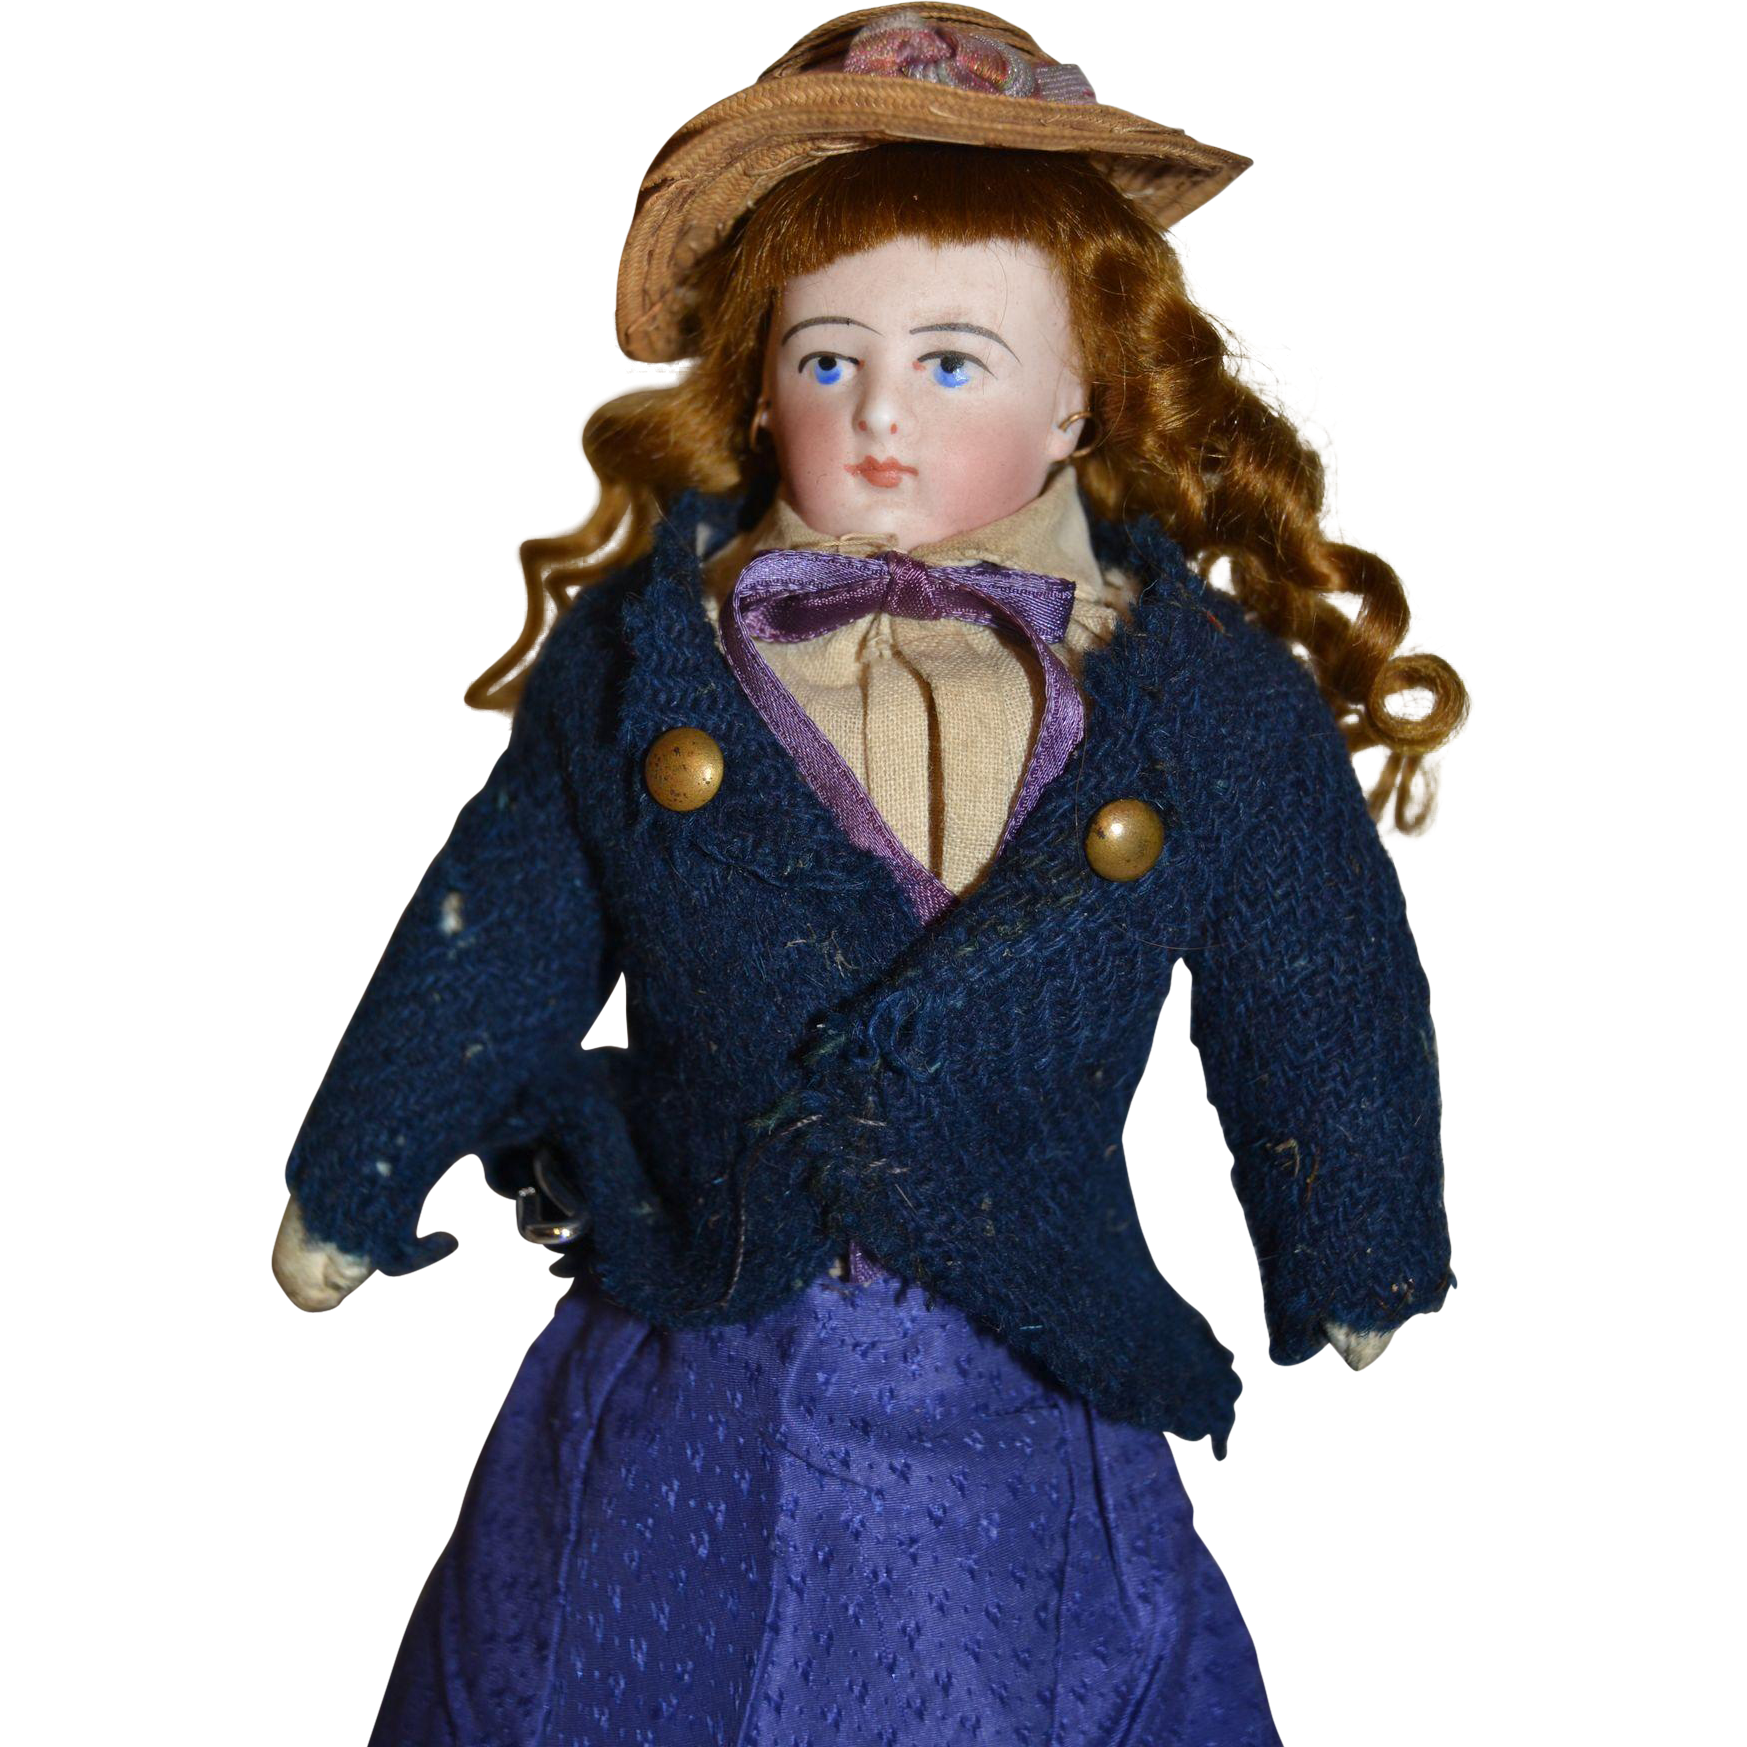 Little nice fashion doll from FG